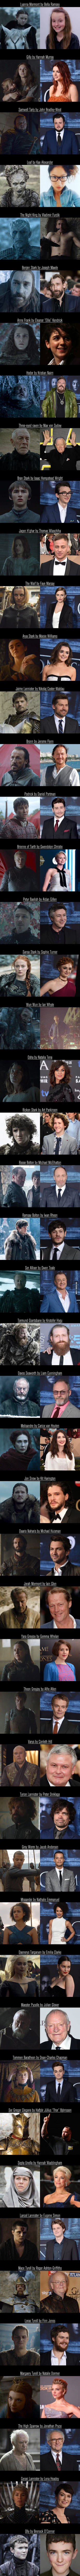 """Here's What The """"Game of Thrones"""" Cast Looks Like In Real Life"""